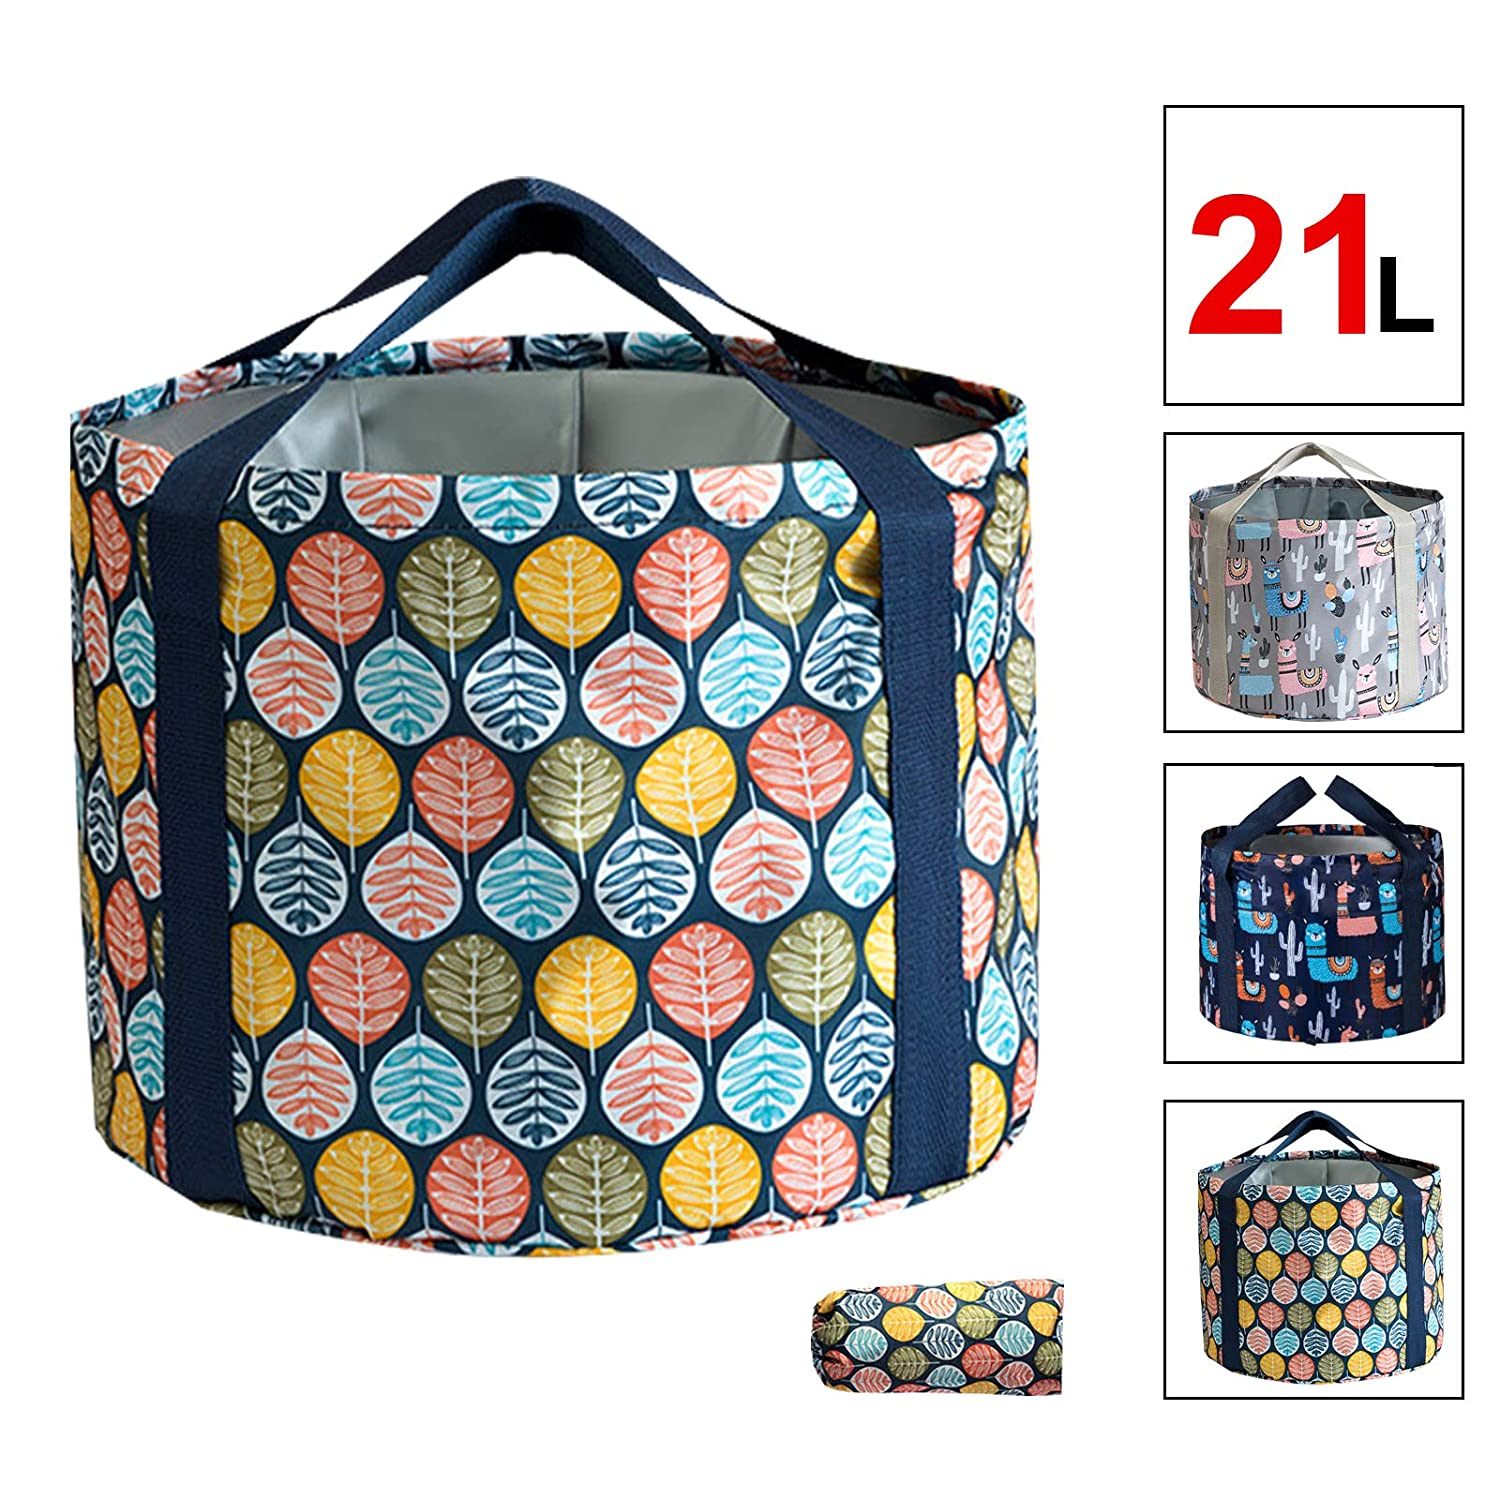 ENIVING Multifunctional Foldable Water Bucket Portable Travel Foot Bath Tub Collapsible for Soaking Feet Portable for Indoor Outdoor Cooking Picnic Camping Hiking Traveling(21L leaves)